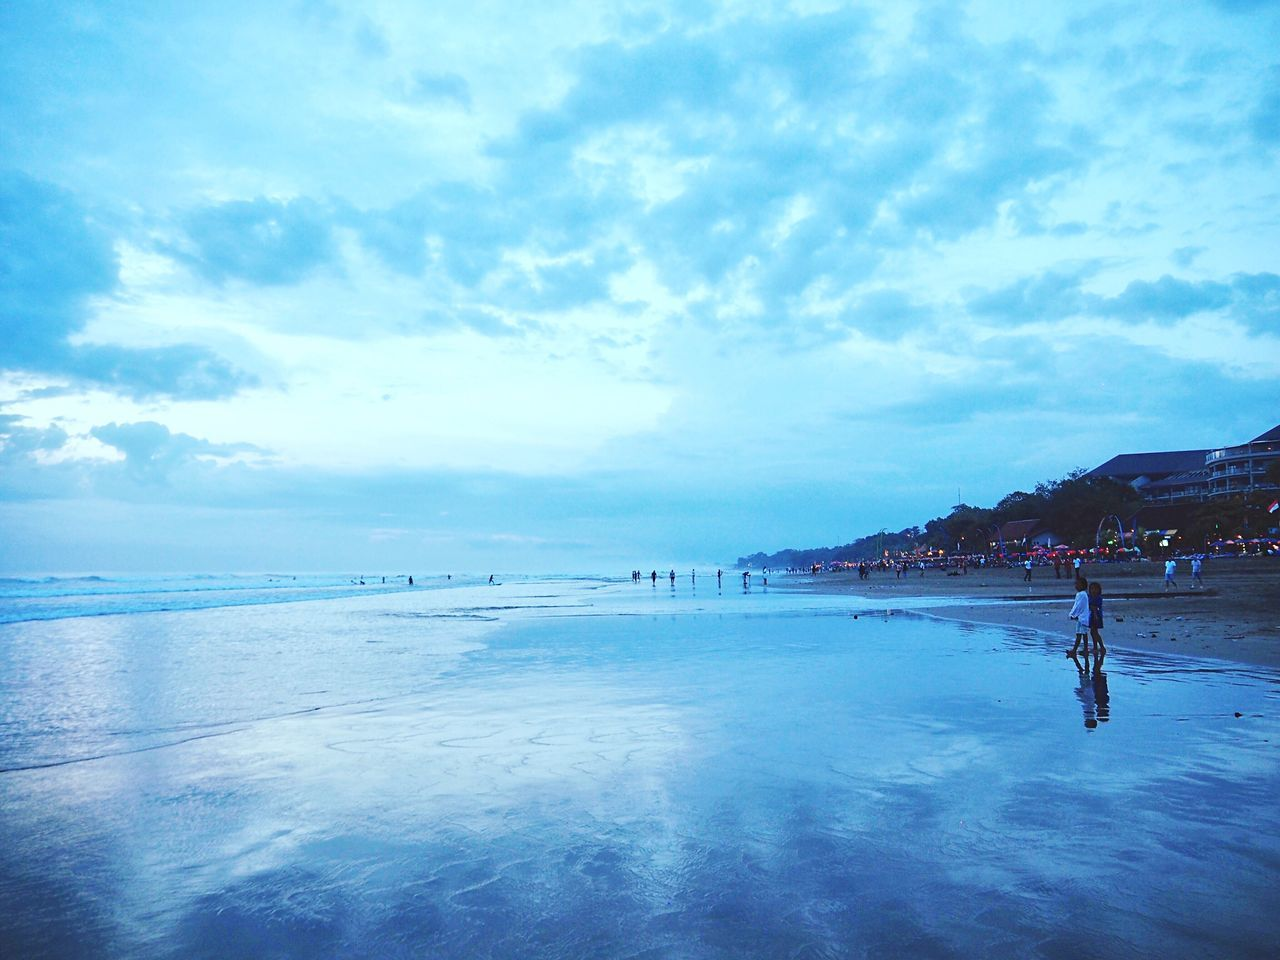 Travel Travel Destinations Seascape Outdoors Wanderlust Enjoying Life Getting Inspired Horizon Over Water Cloud - Sky Sky And Clouds Nature Beauty In Nature Landscape Beach Reflection People Watching From My Point Of View Ocean View Relaxing Enjoying The View Skyporn EyeEmBestPics EyeEm Best Shots in Denpasar , Bali